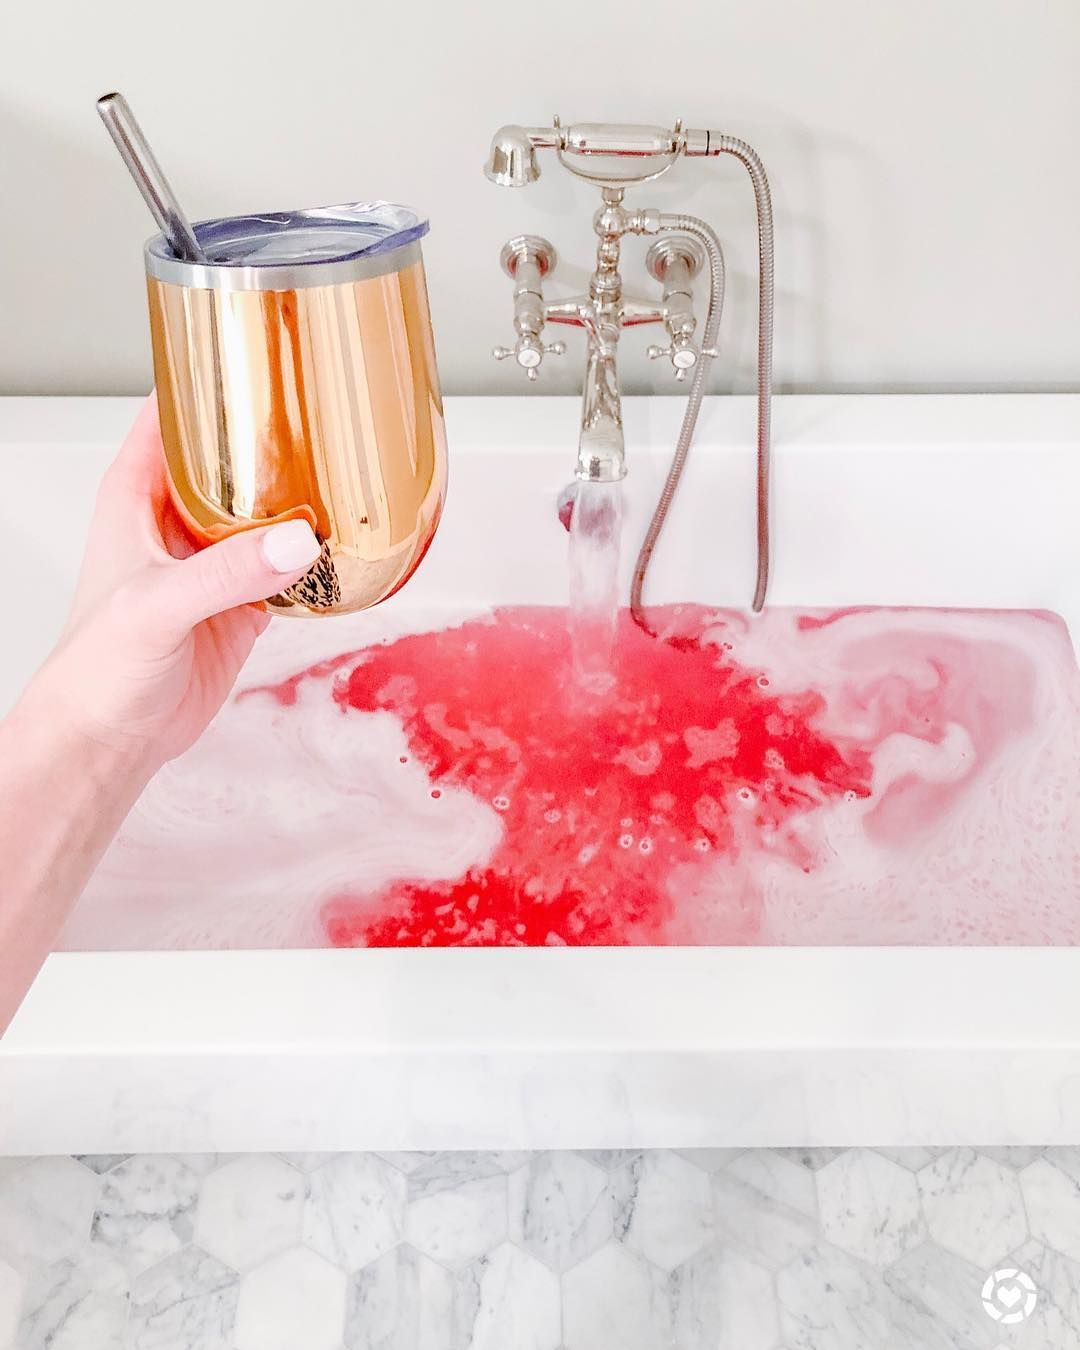 Does Anyone Kinda Hold Their Breath When They Plunge Into Bath Bomb Filled Tub I Always Freak Out A Little Thinking I In 2020 Galentines Party Relaxing Bath Glass